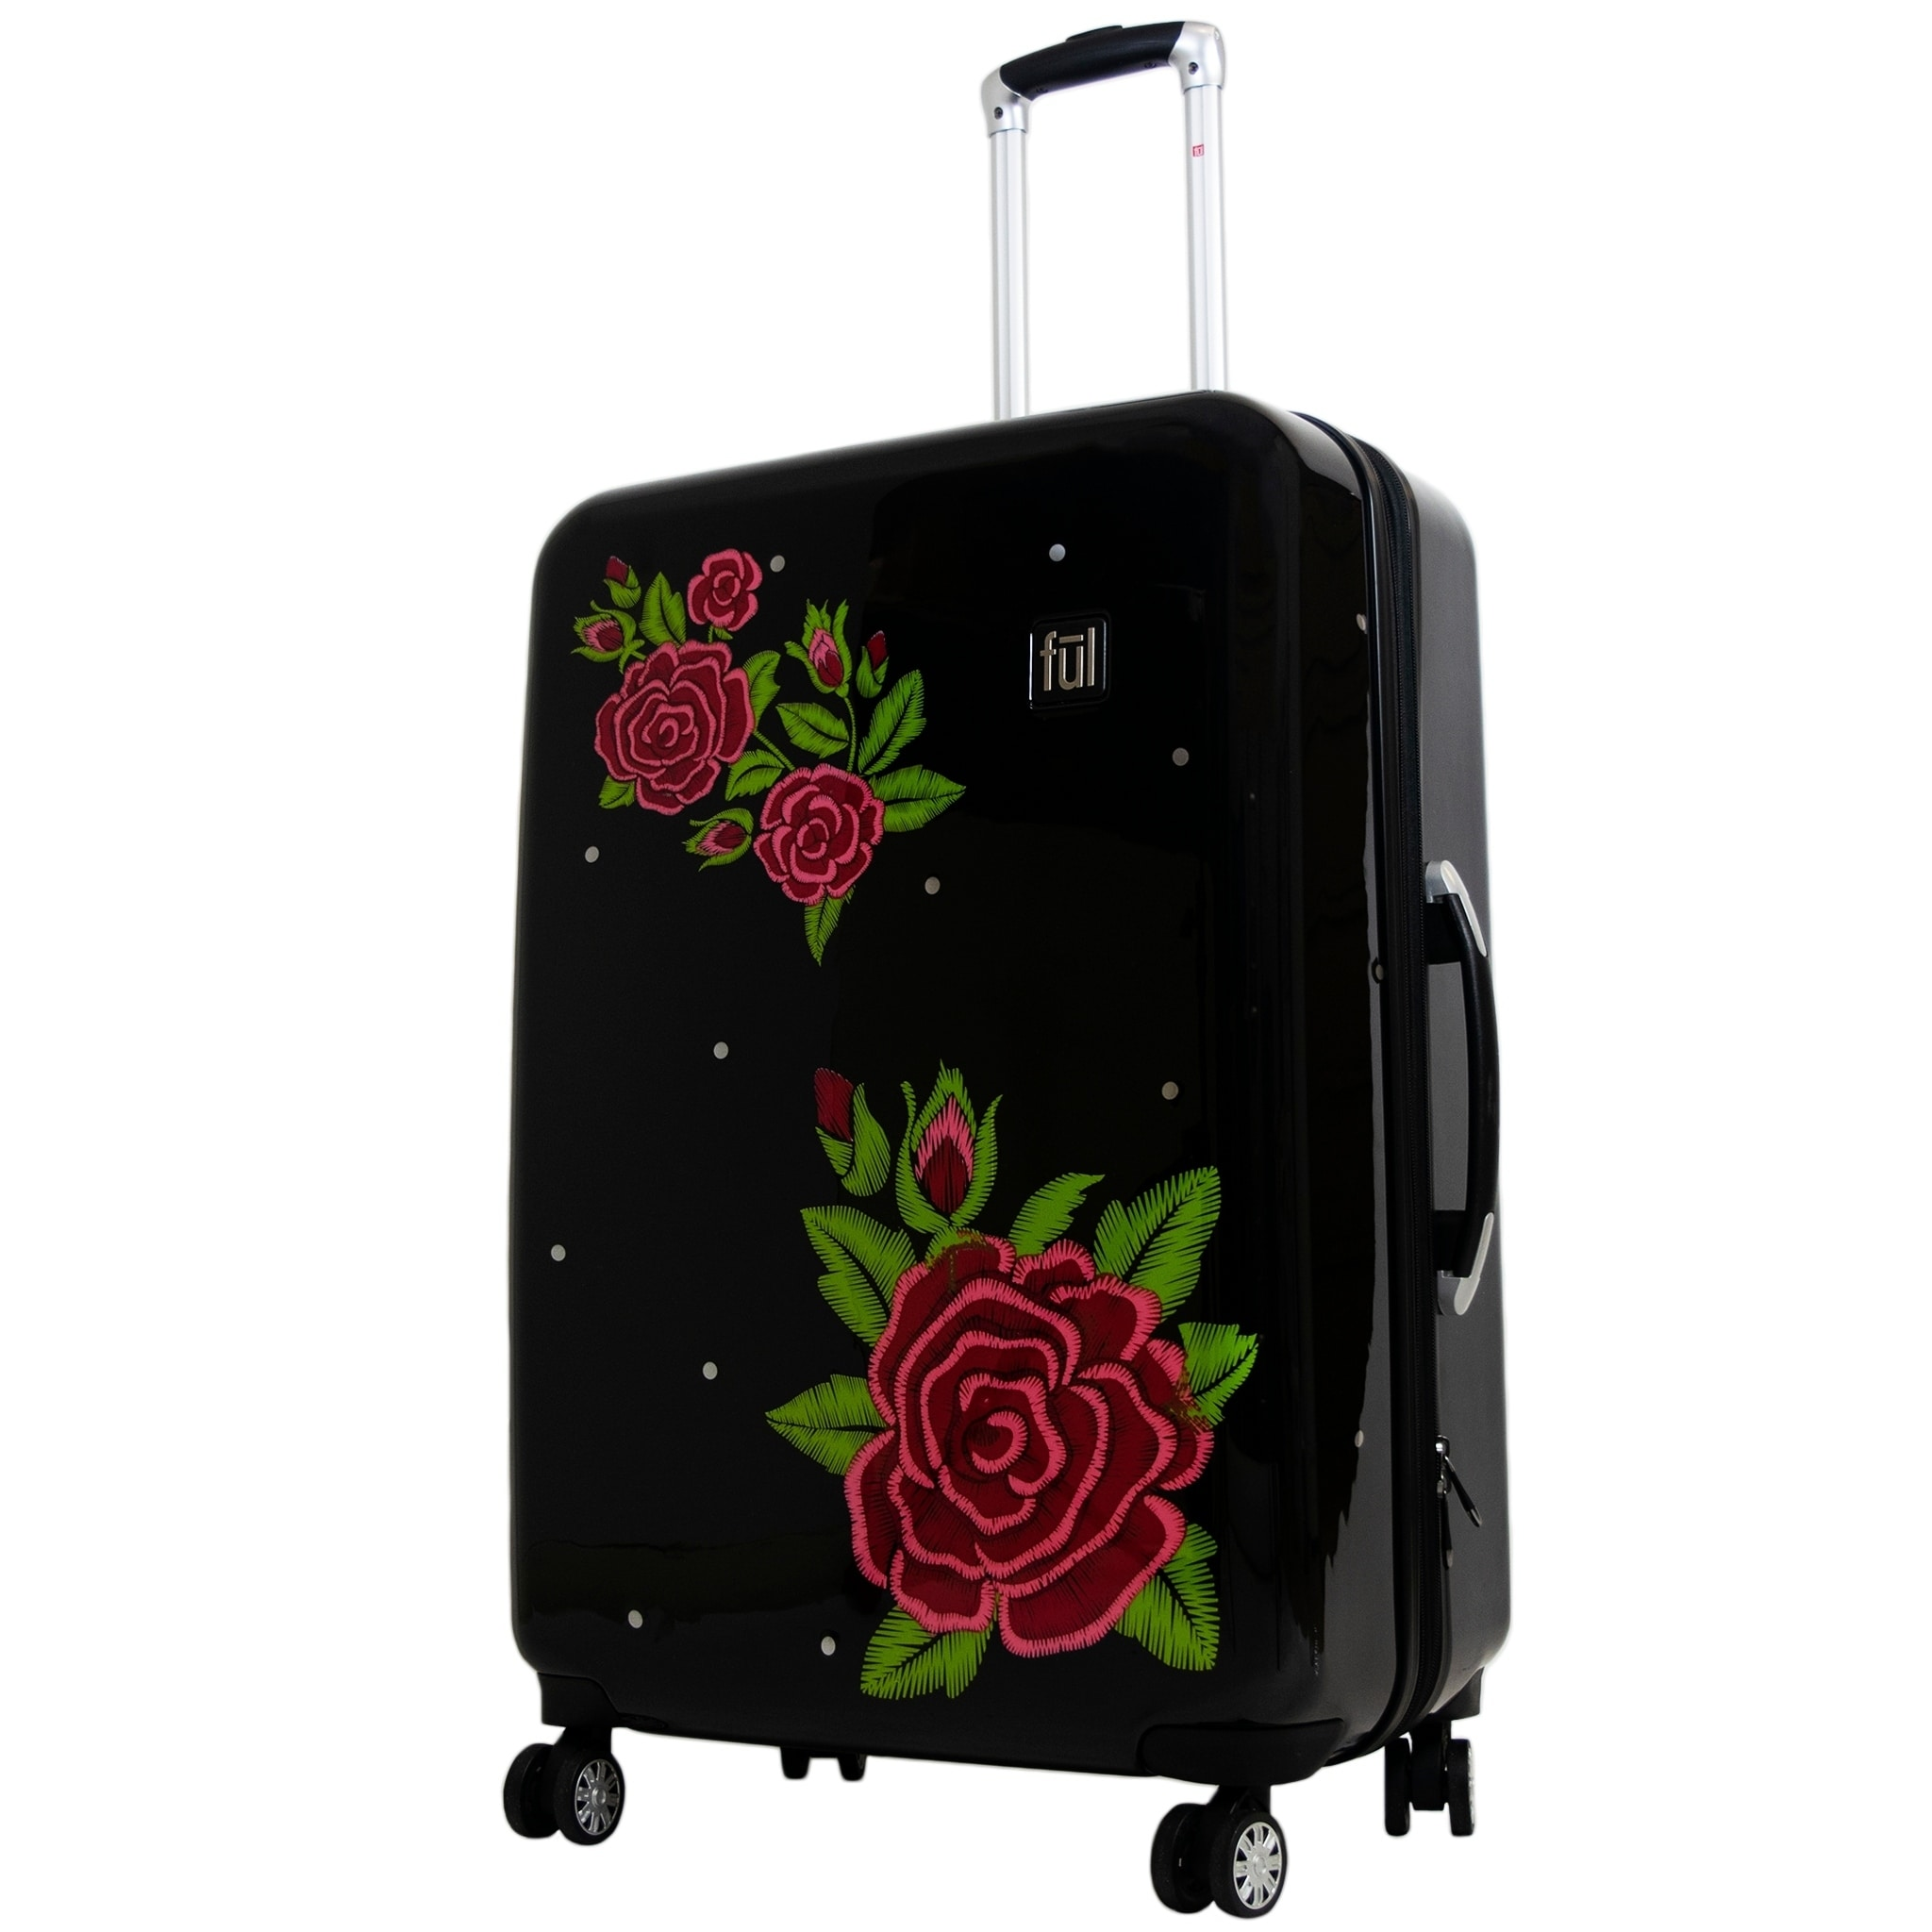 b8e814bcf Shop Ful Printed Rose 29in Hard Sided Rolling Luggage, Black - 29 - On Sale  - Free Shipping Today - Overstock - 23387115